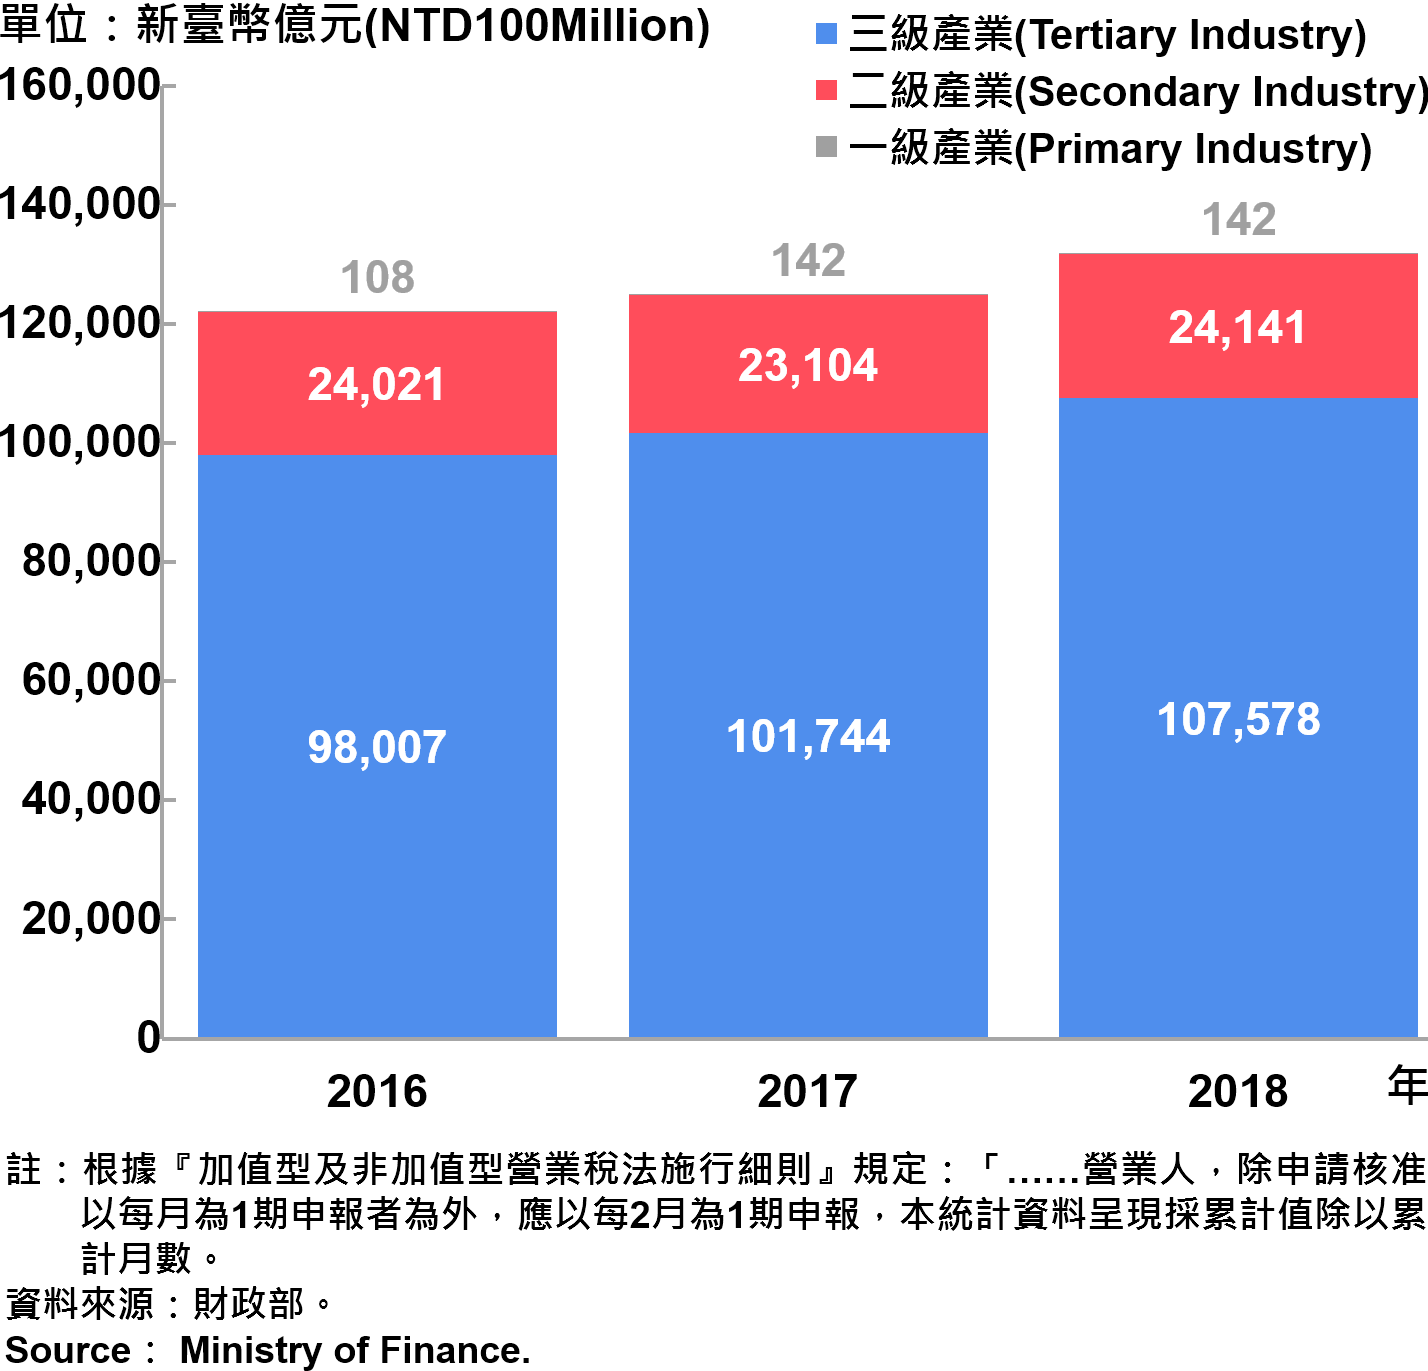 臺北市一二三級產業銷售額—2018 Sales of Primary , Secondary and Tertiary Industry in Taipei City—2018